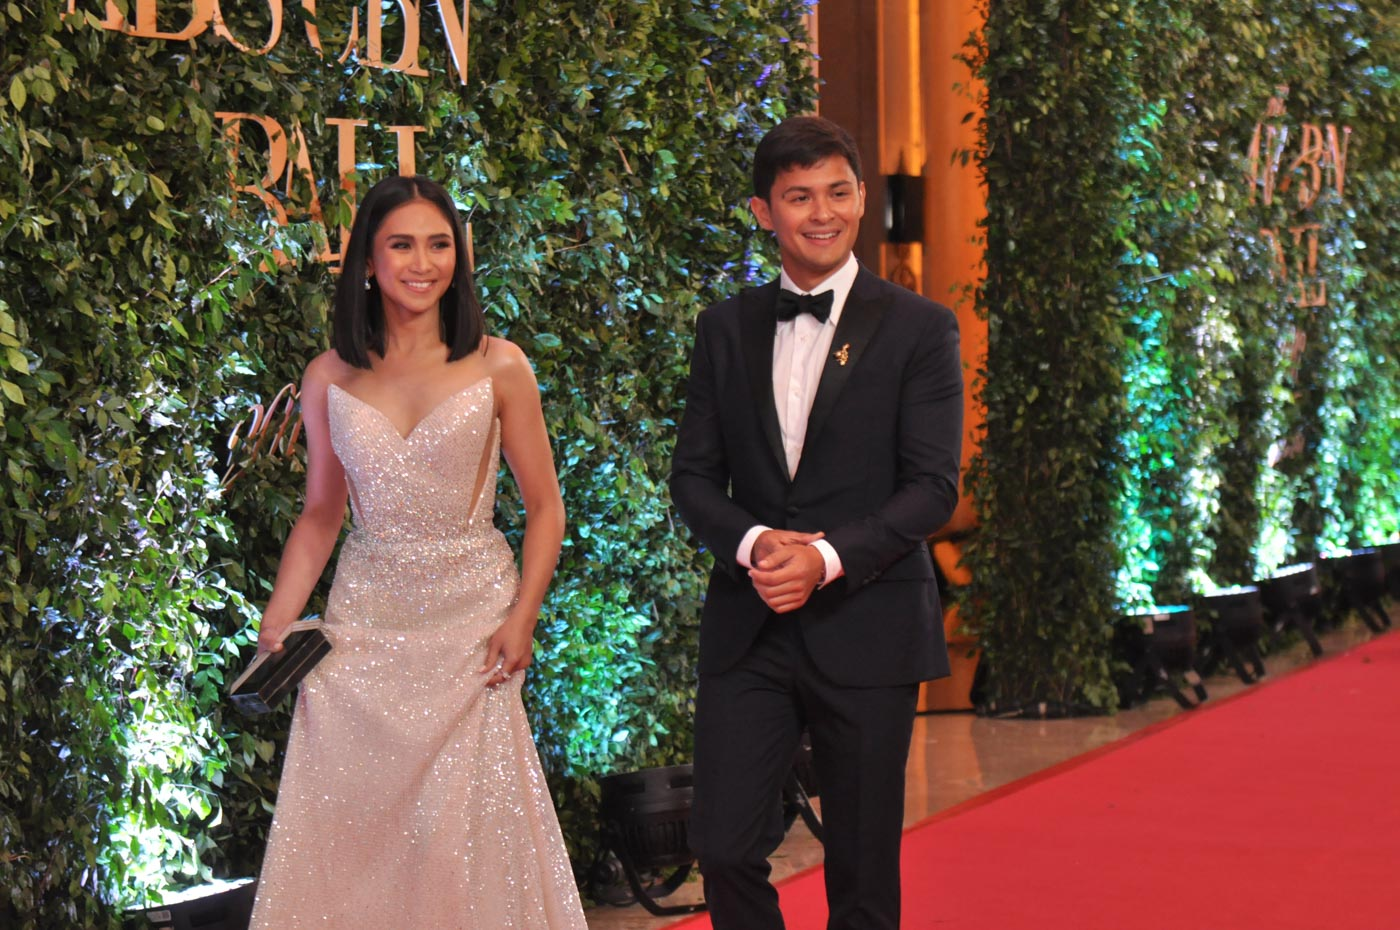 NIGHT AT THE BALL. The couple walk the red carpet at the 2018 ABS-CBN Ball. File photo by Jay Ganzon/Rappler